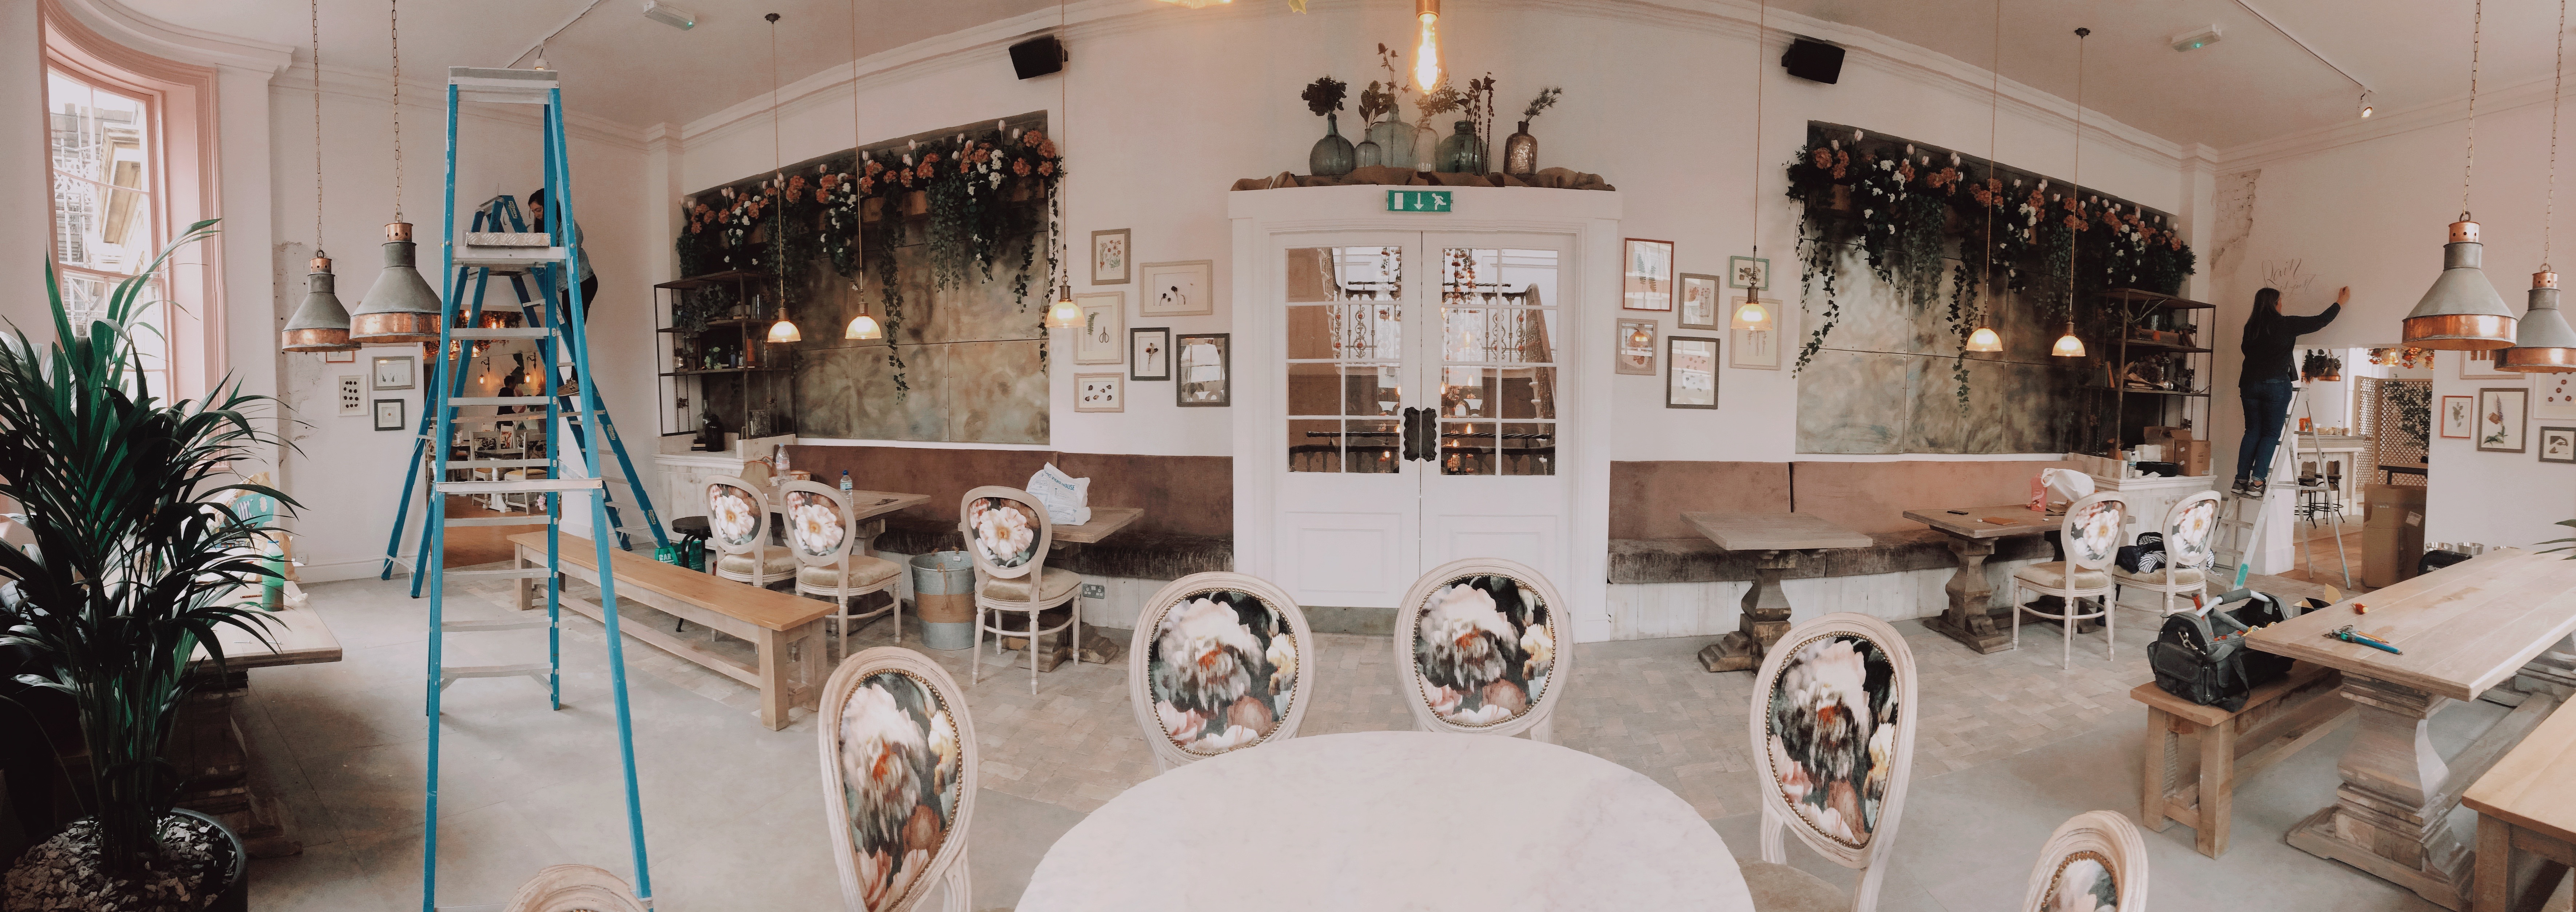 Hand lettered murals at The Florist in Liverpool by Mellor and Rose